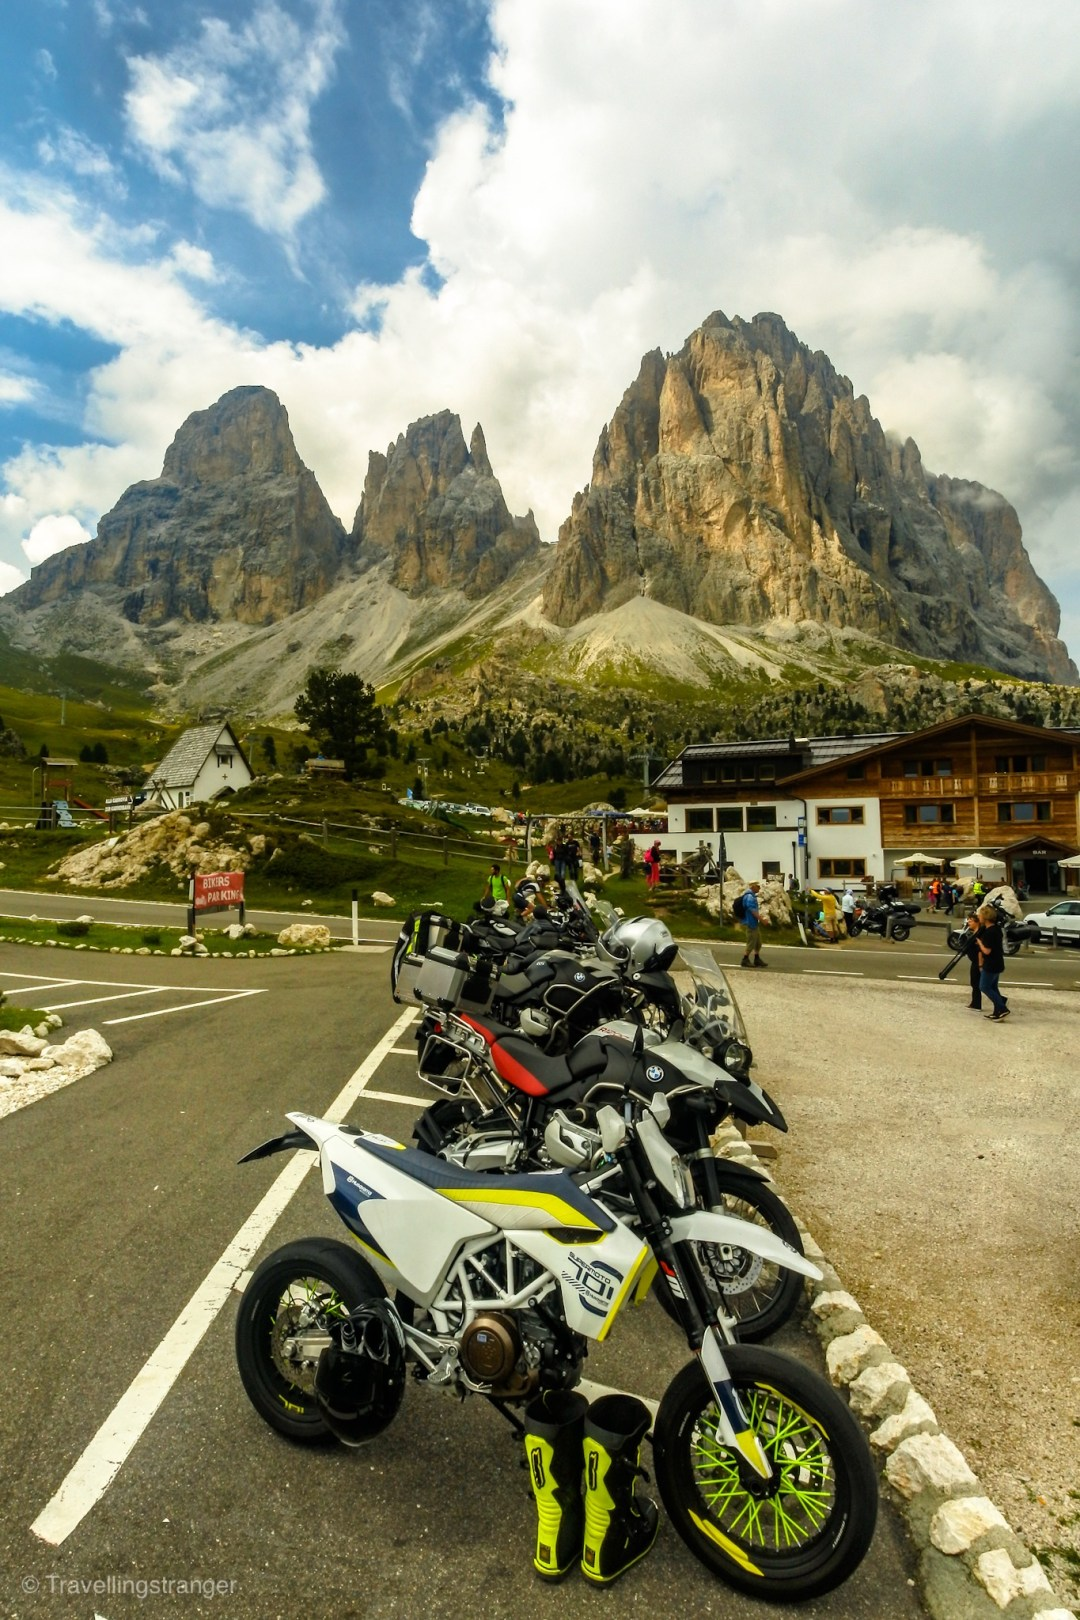 Bike park at Passo Sella